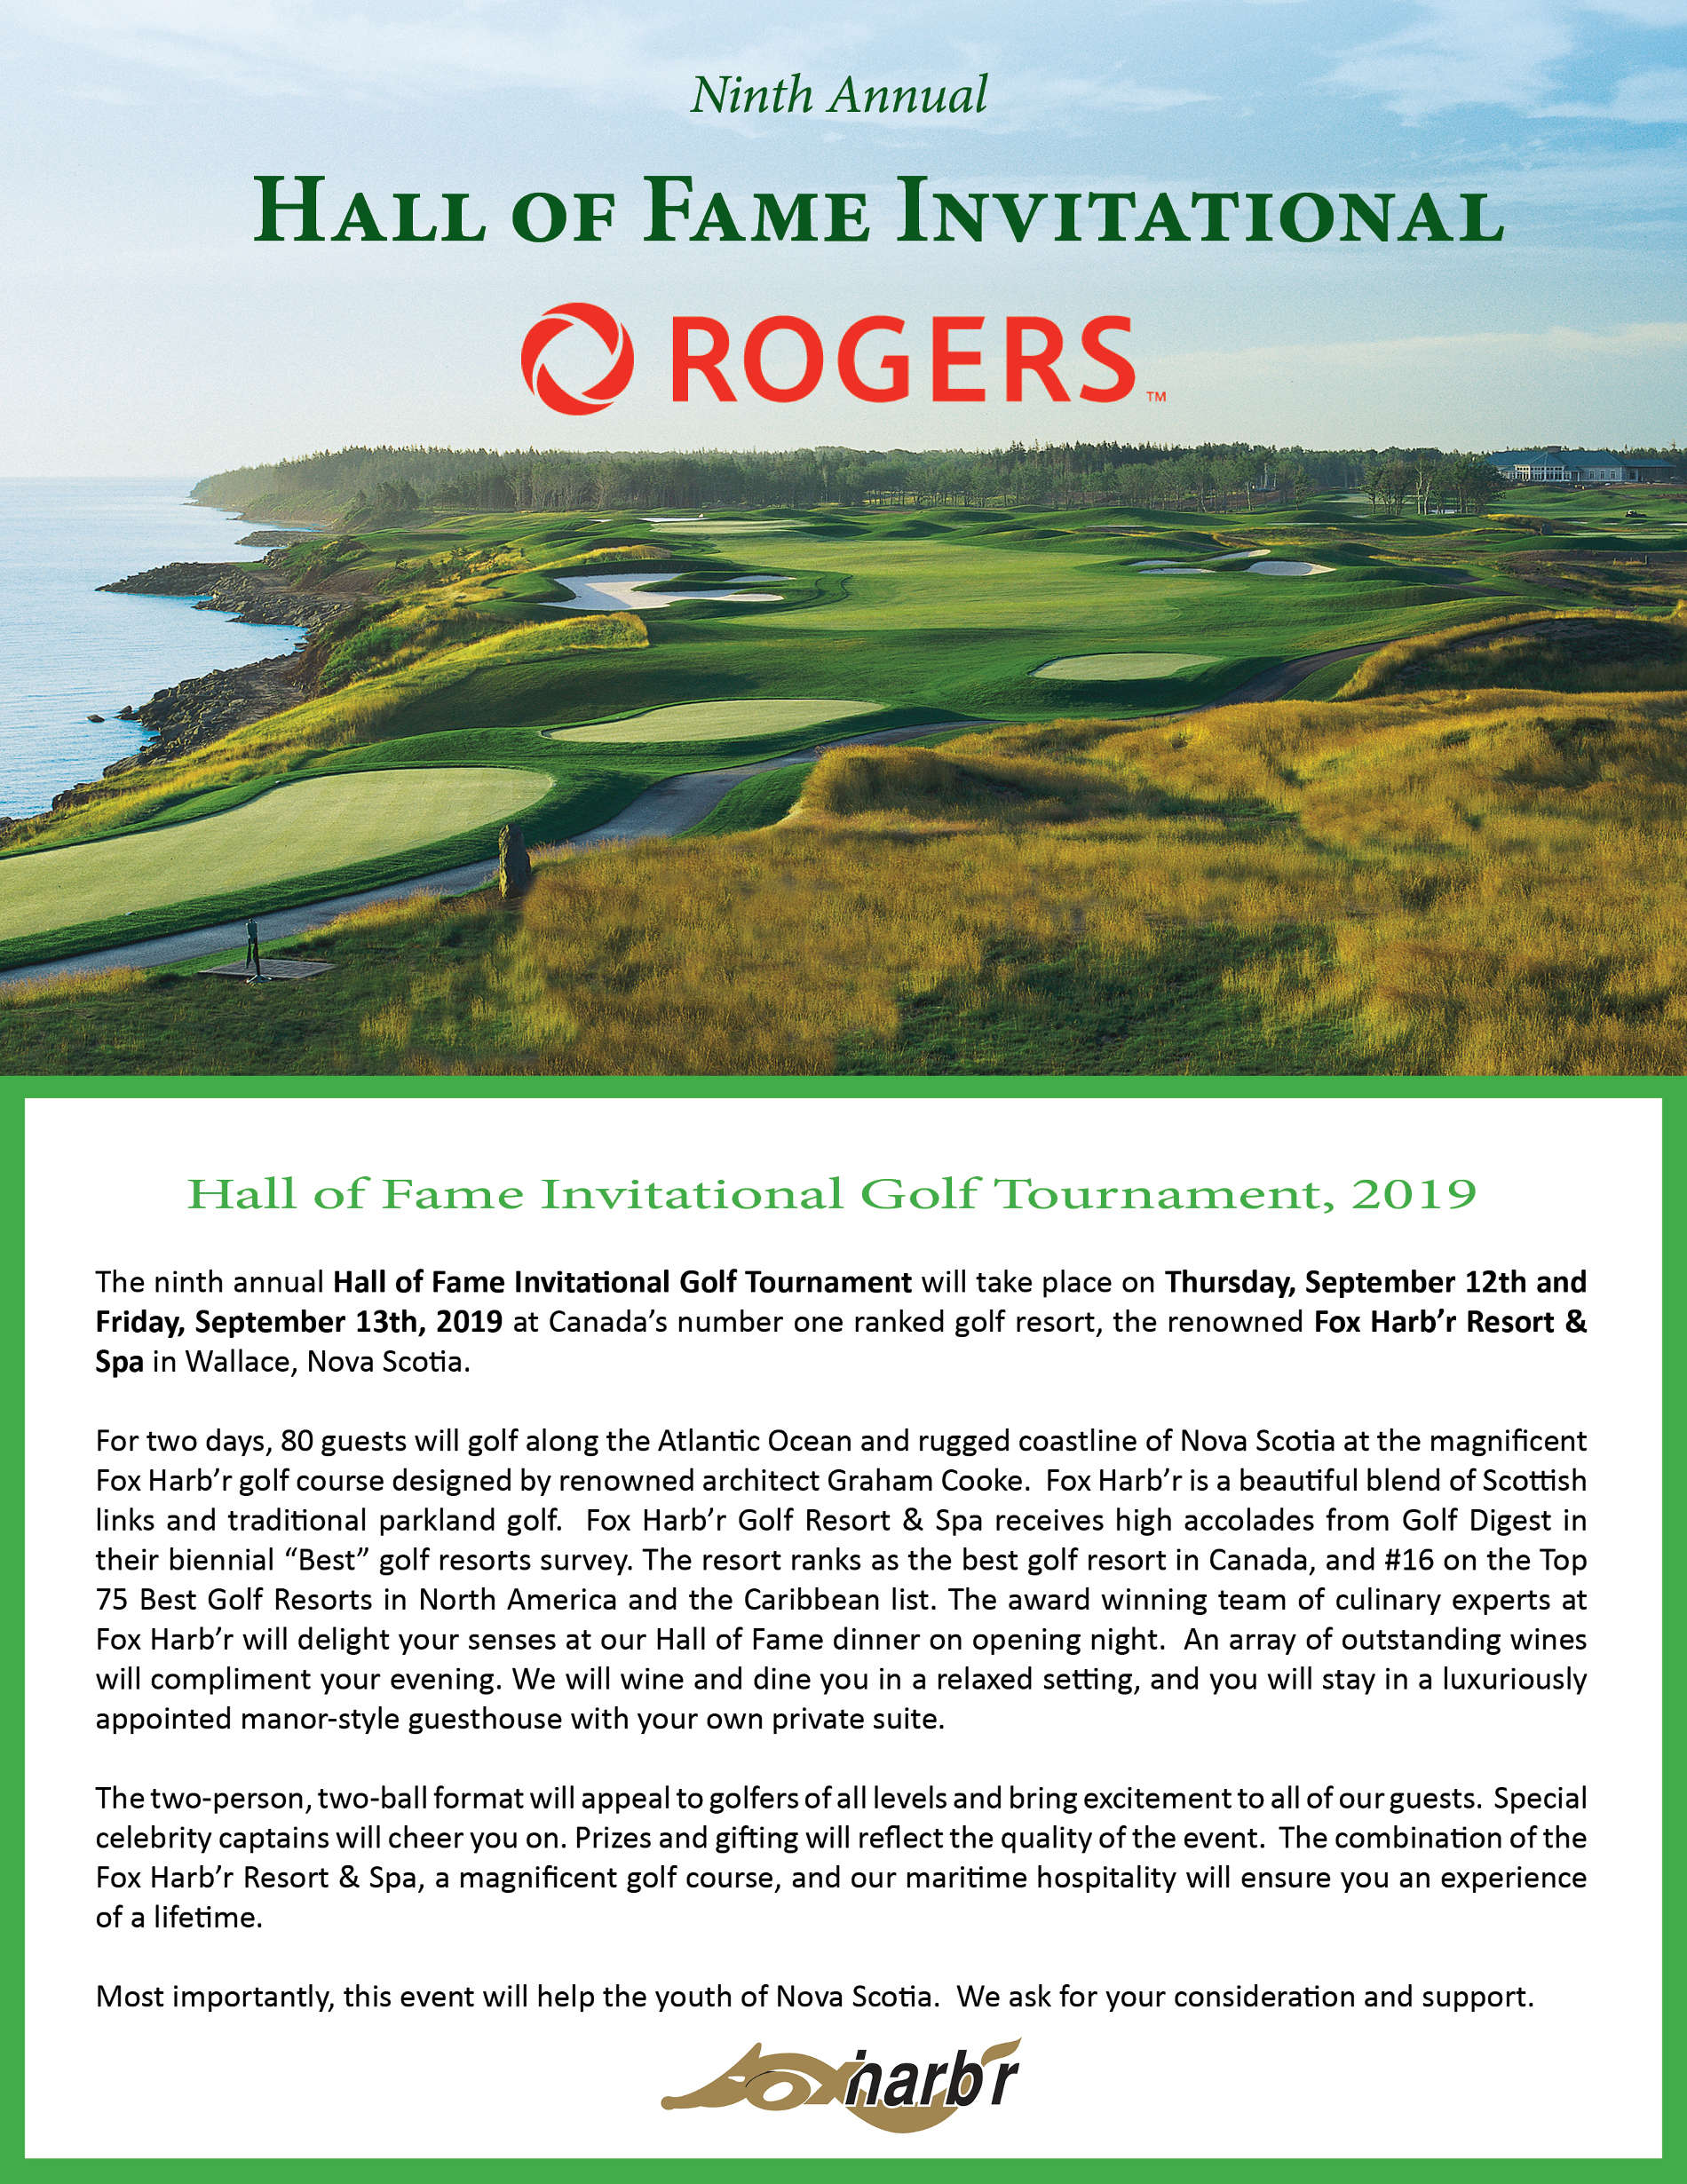 Ninth Hall of Fame Invitational. Thursday, September 12th and Friday, September 13th, 2019 at Fox Harb'r Resort & Spa in Wallace, Nova Scotia.